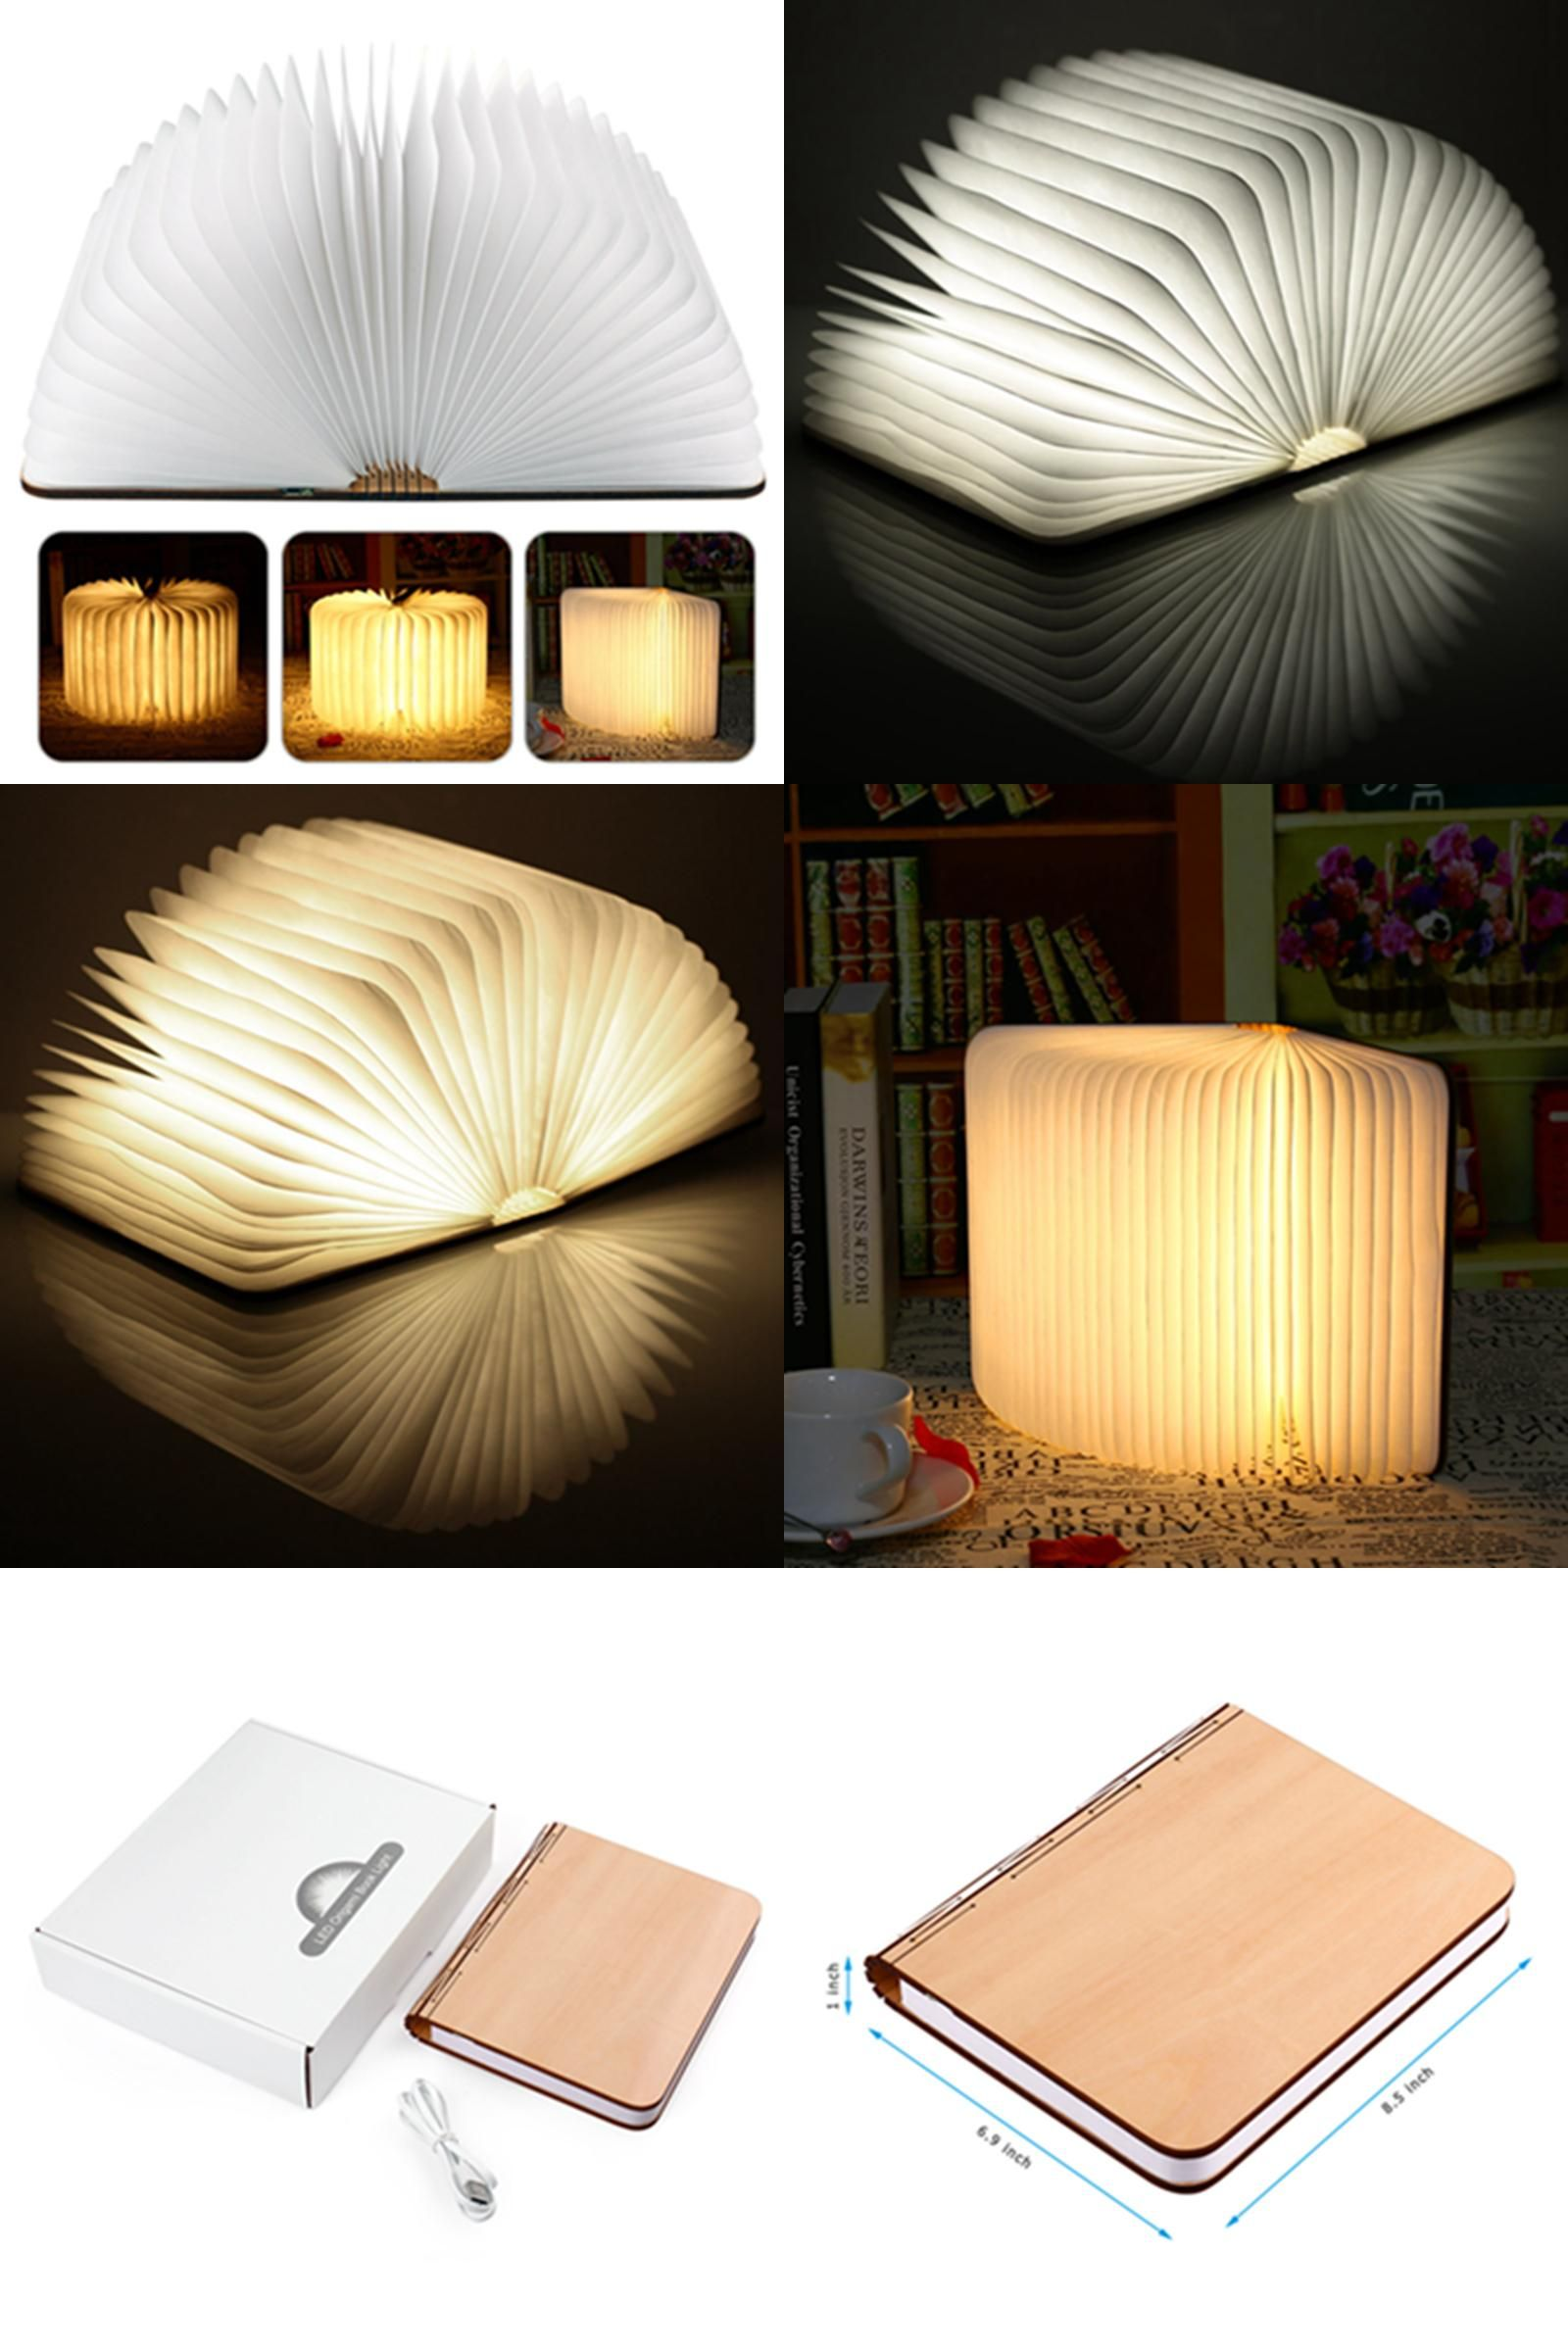 lights book luminolite mostcraft night light rechargeable the at extra bed best in led reading for bright